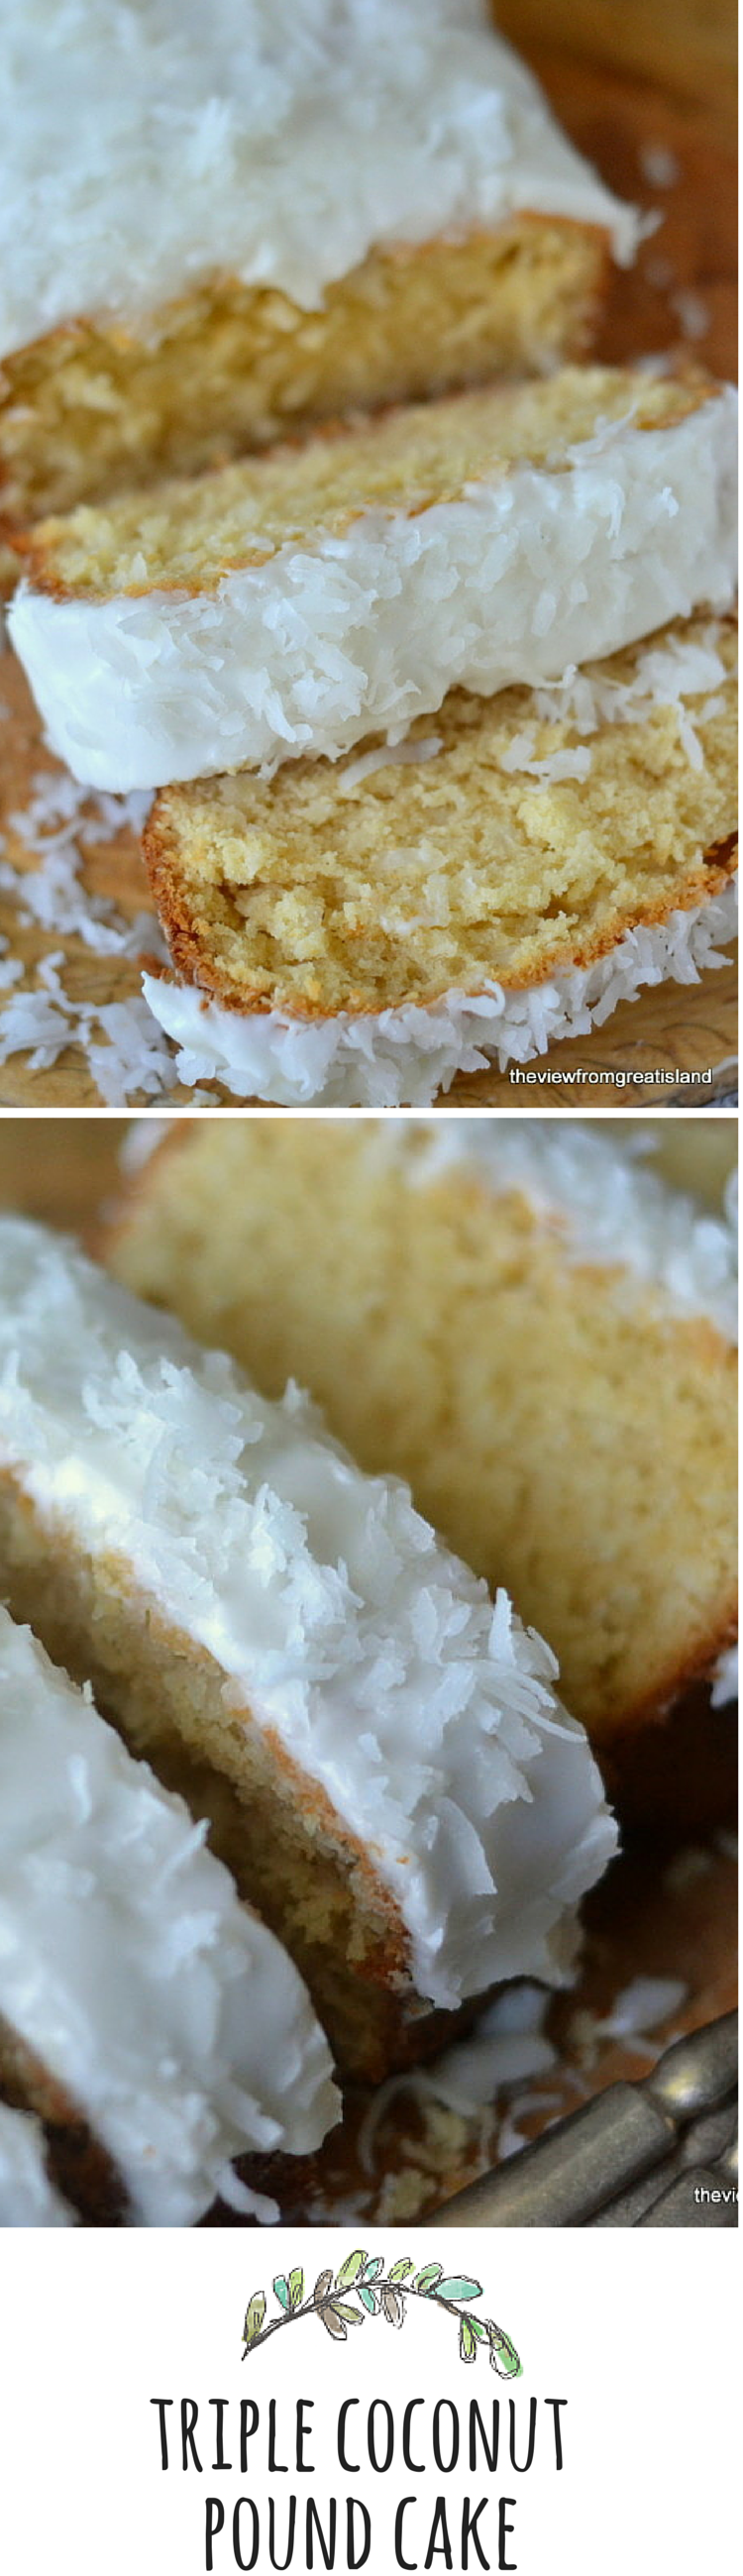 ~~Triple Coconut Pound Cake   be still my heart! This is a must for any coconut lover   The View from Great Island~~